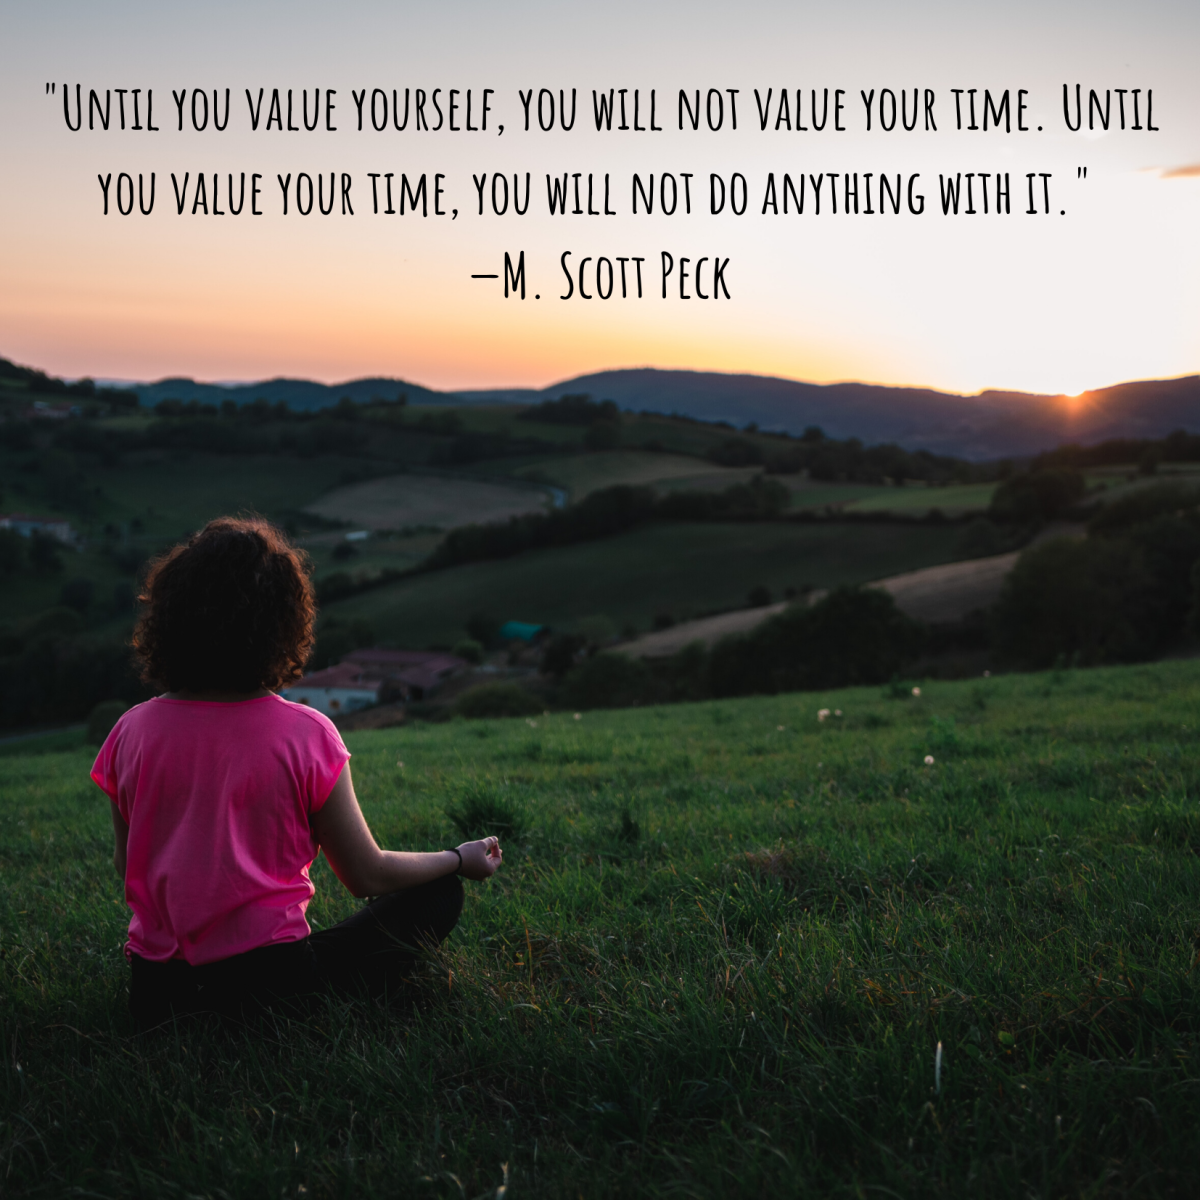 Taking time to yourself is an important part of staying calm, focused, and grounded.